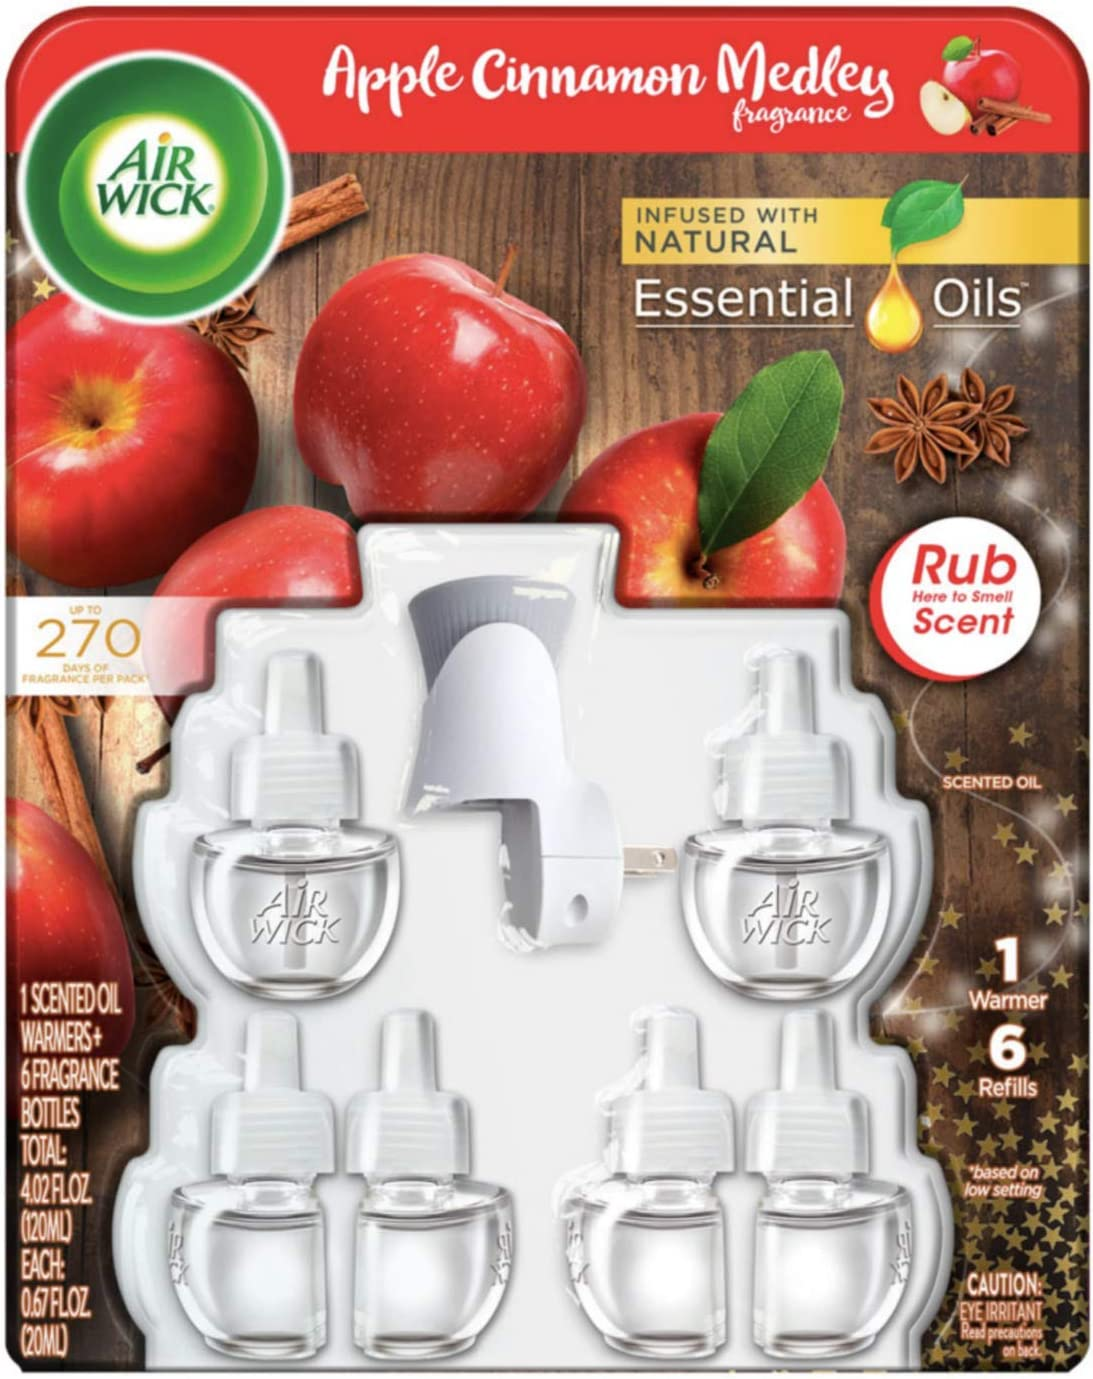 AirWick Apple Cinnamon Medley Limited Edition Scented Oil 1 Warmer + 6 Refills